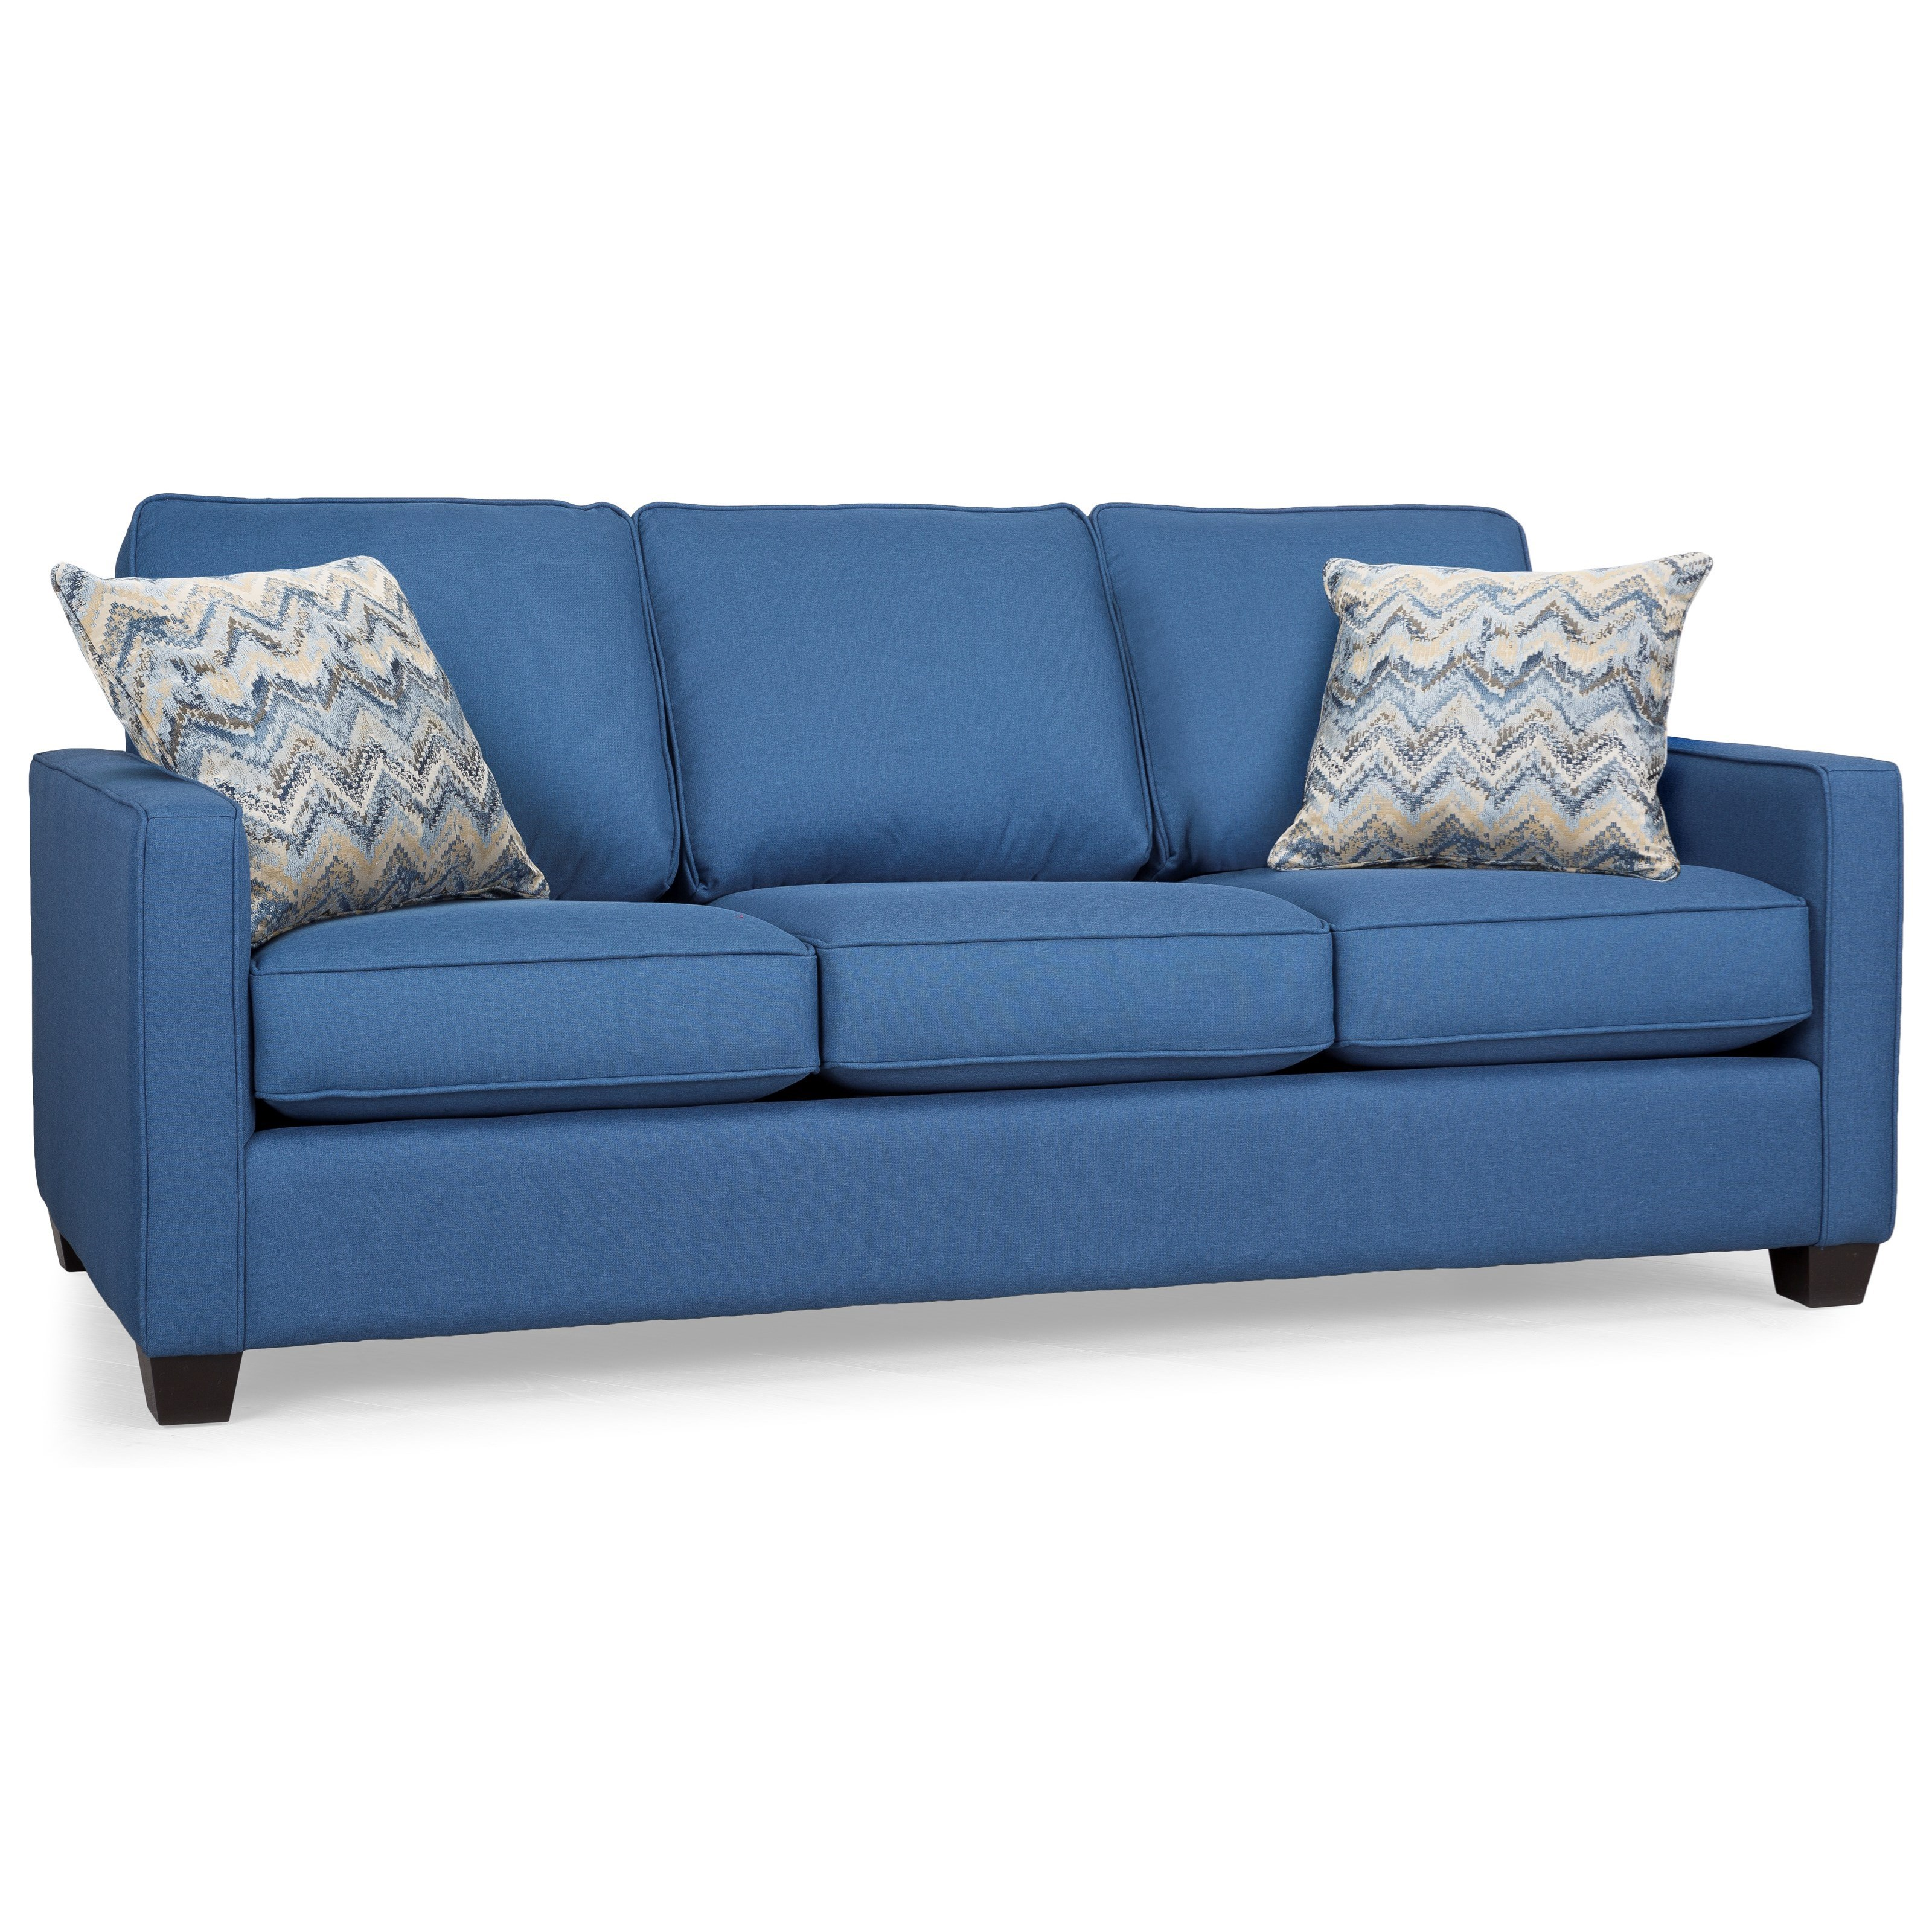 2855 Sofa by Decor-Rest at Upper Room Home Furnishings